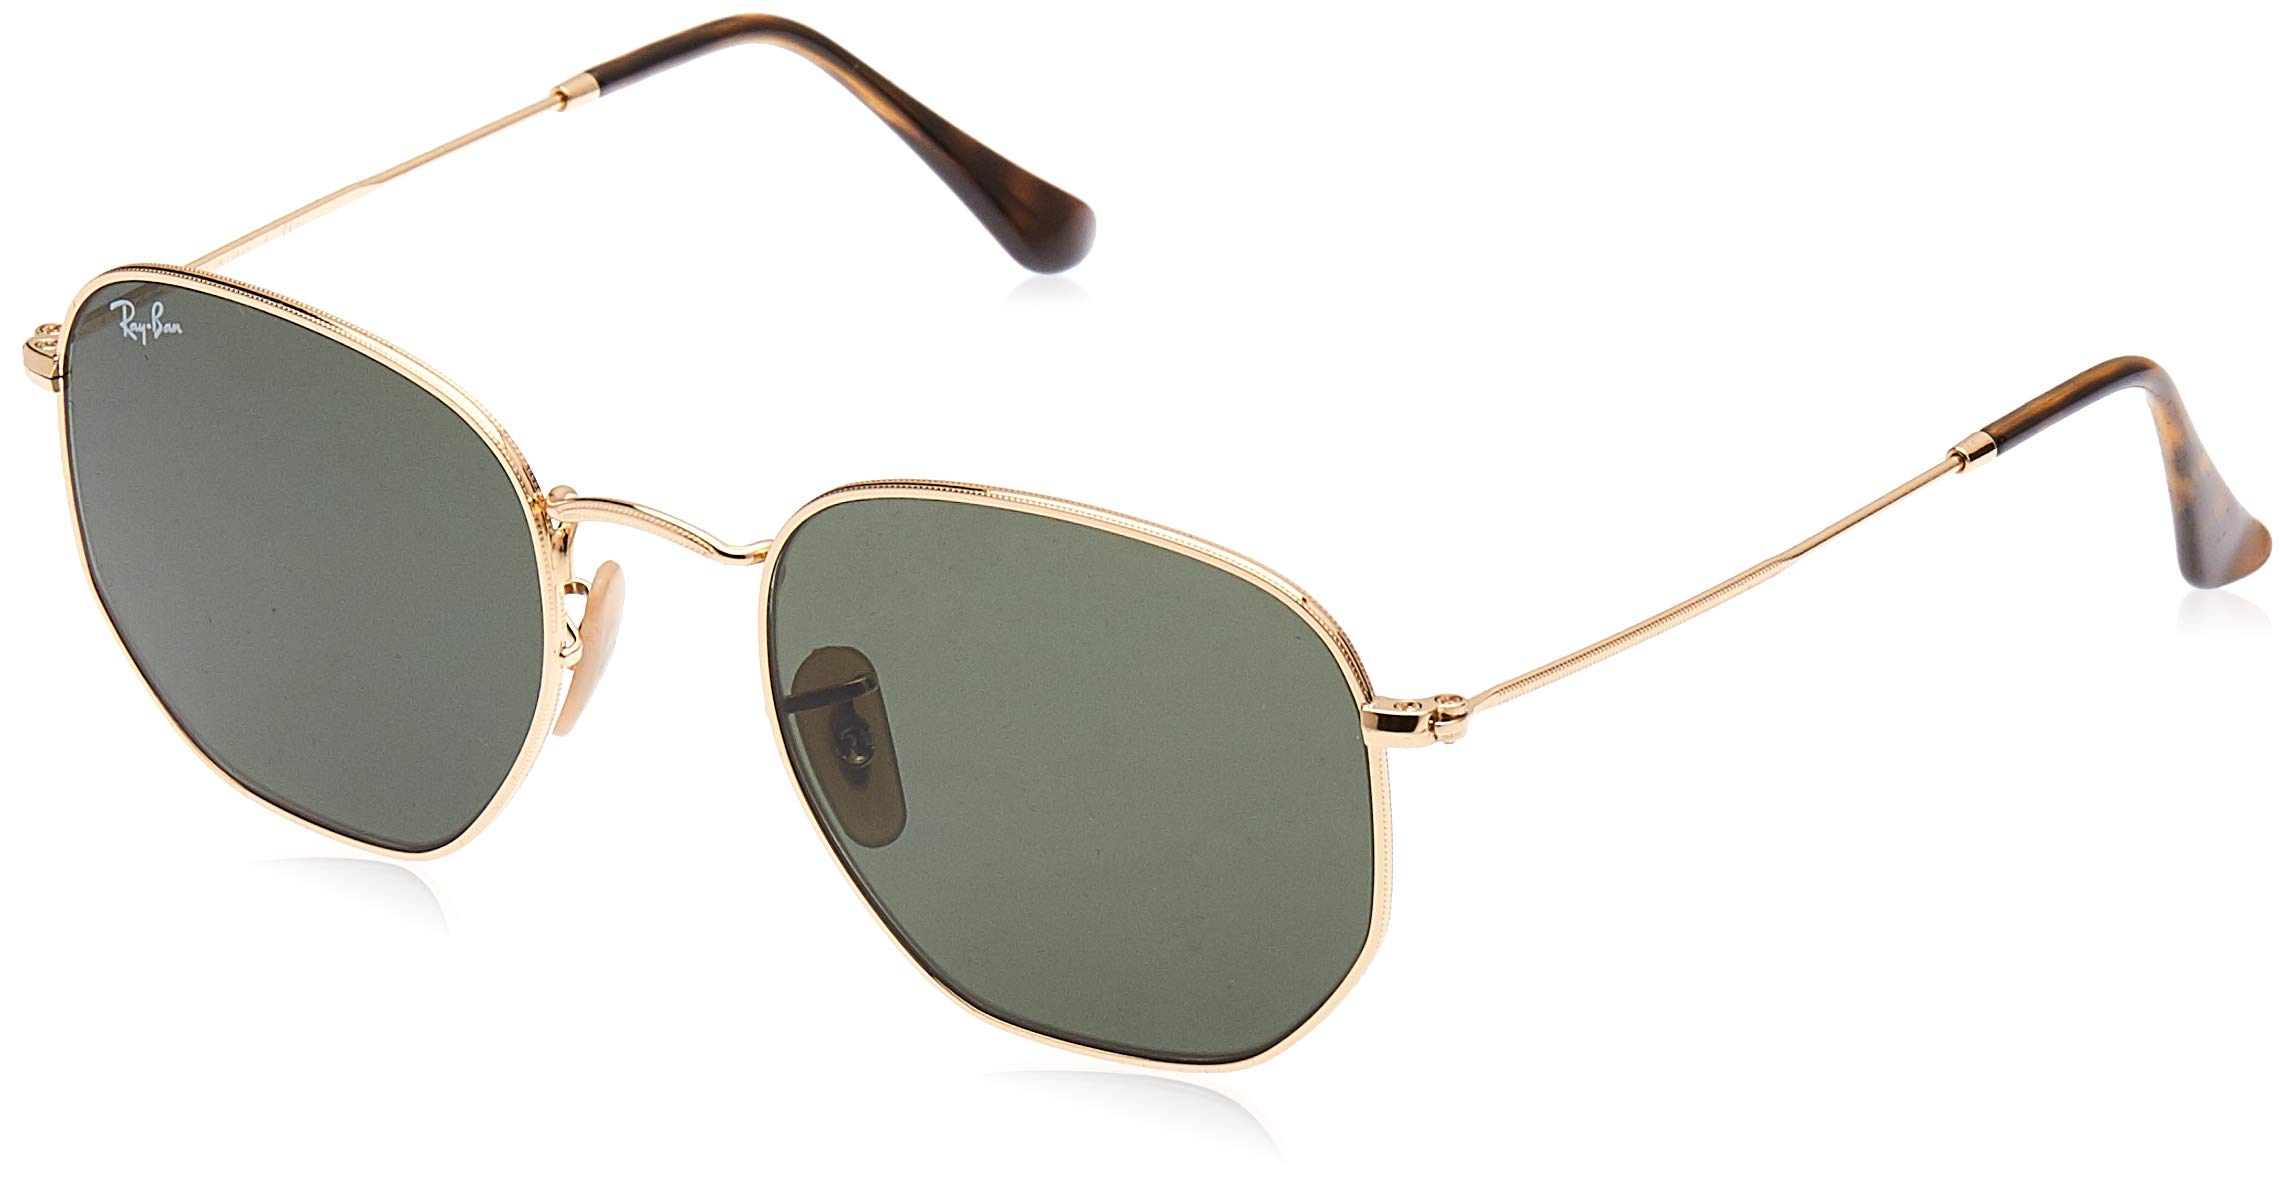 RAY-BAN RB3548N Hexagonal Flat Lenses Sunglasses, Gold/Green, 54 mm by RAY-BAN